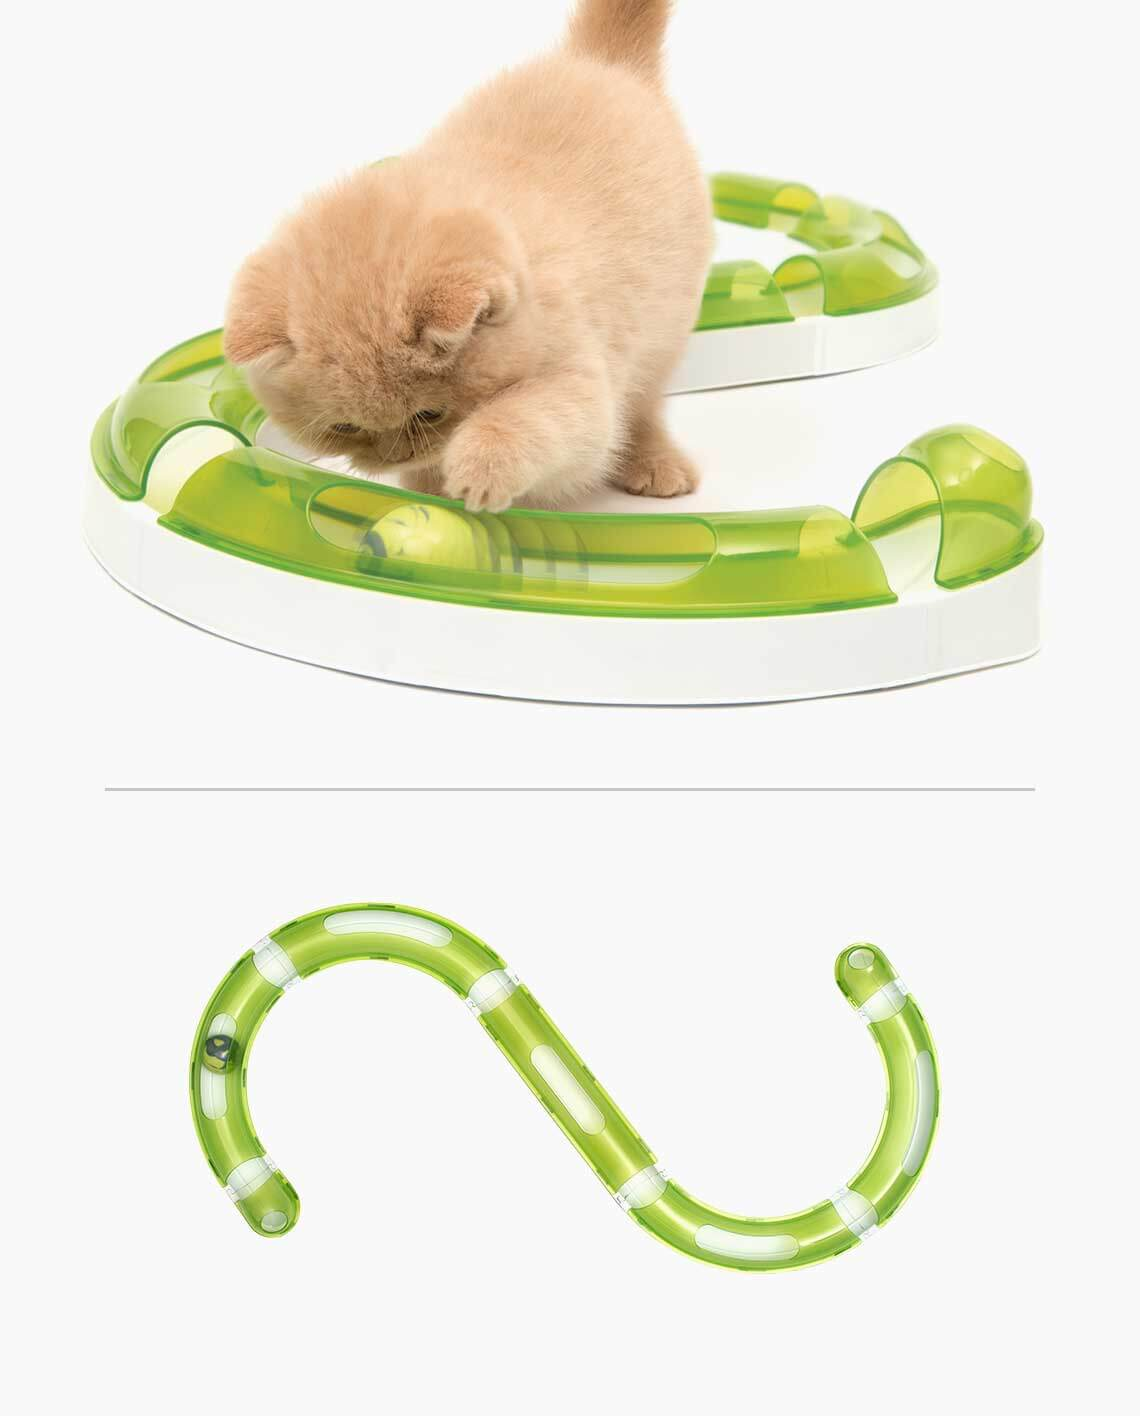 Cat playing with the Senses 2.0 Play Circuit